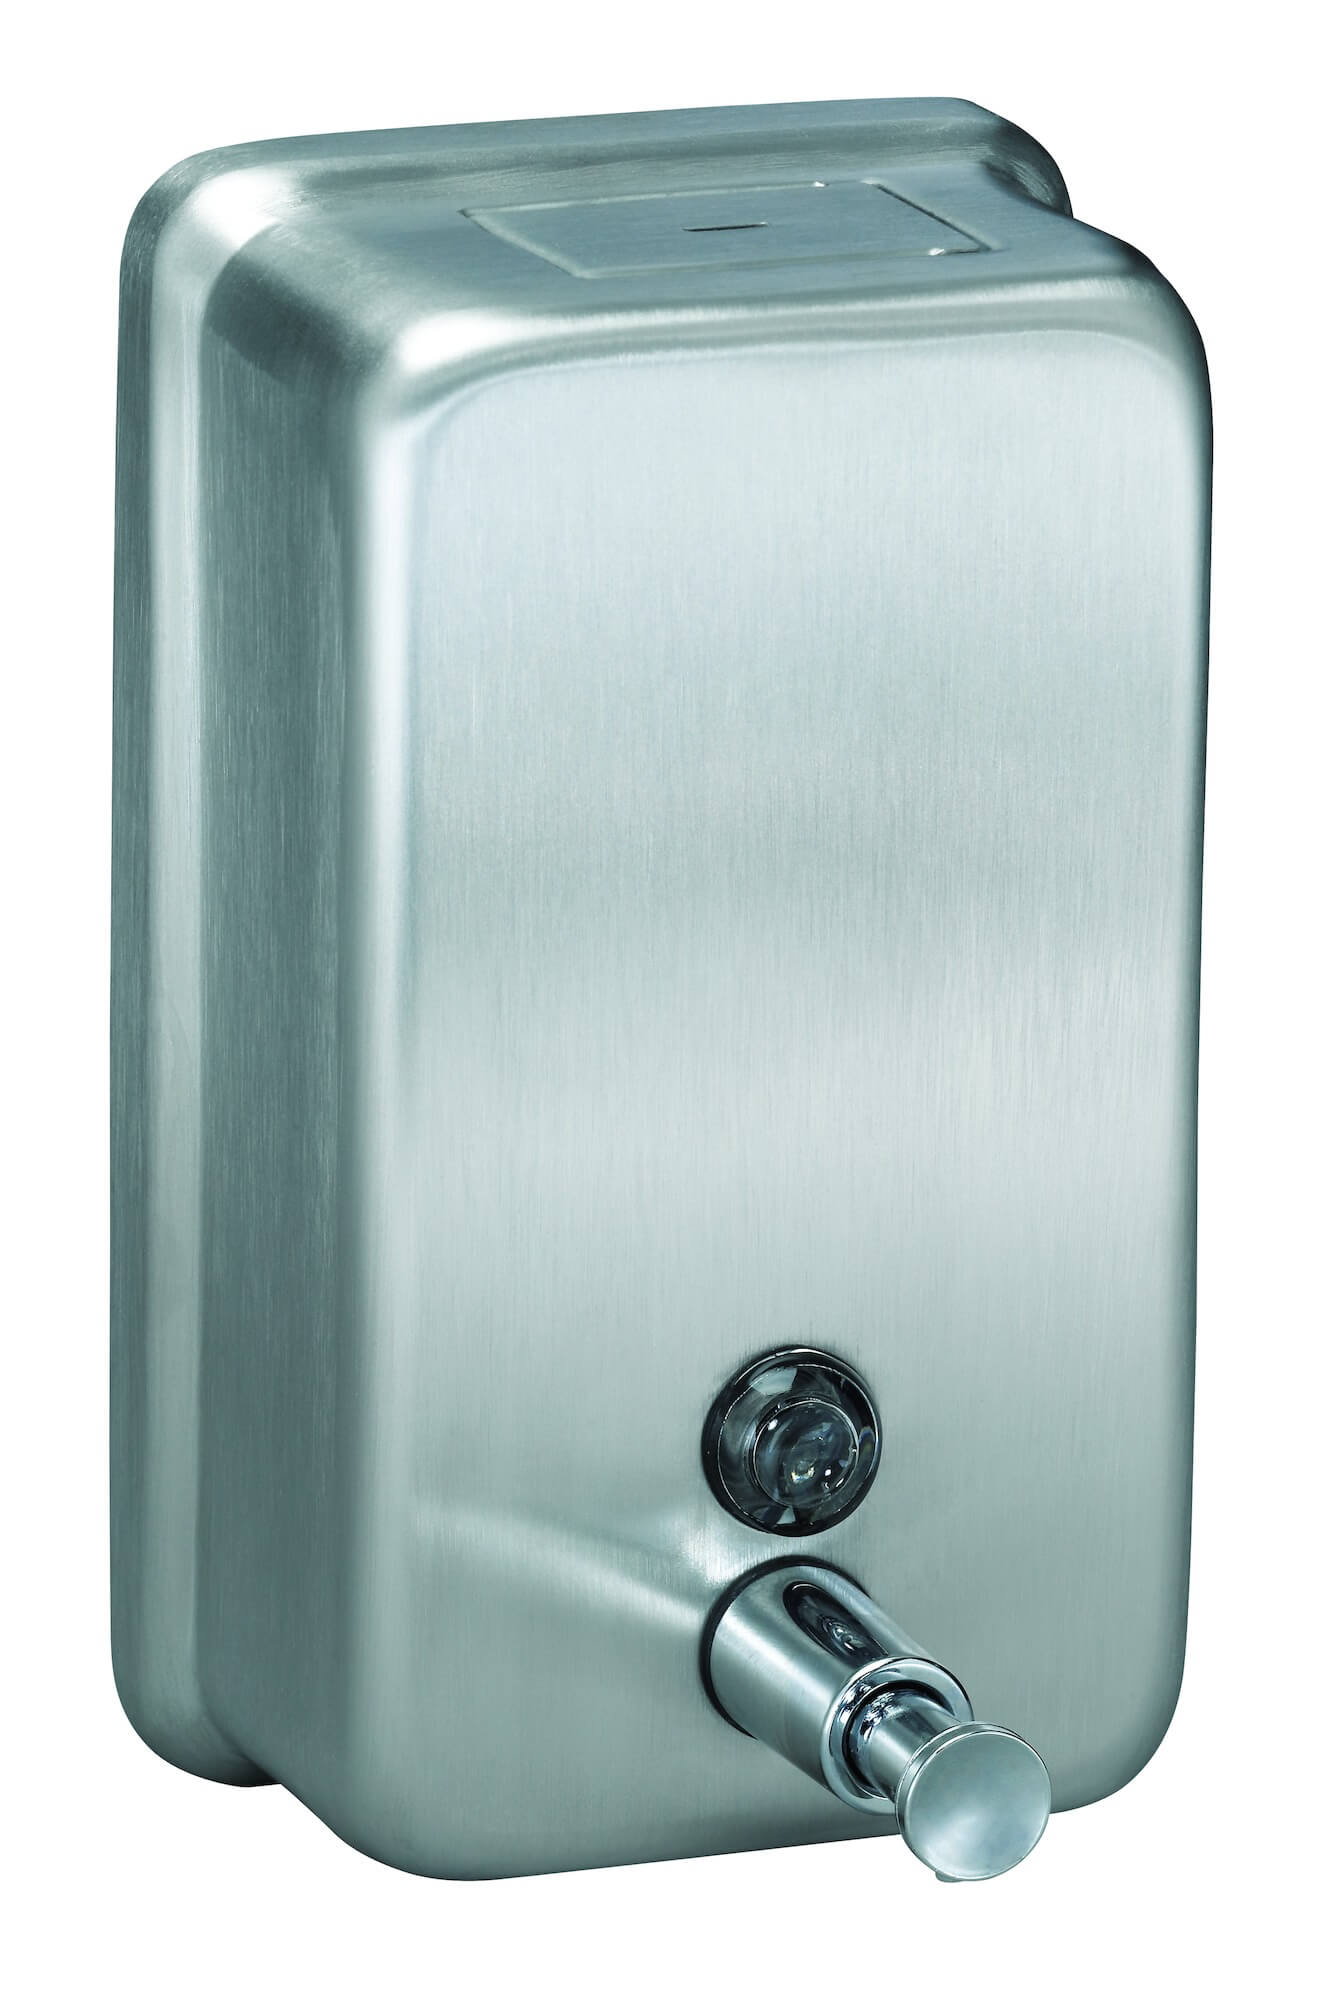 Bradex Bathroom Soap Dispenser